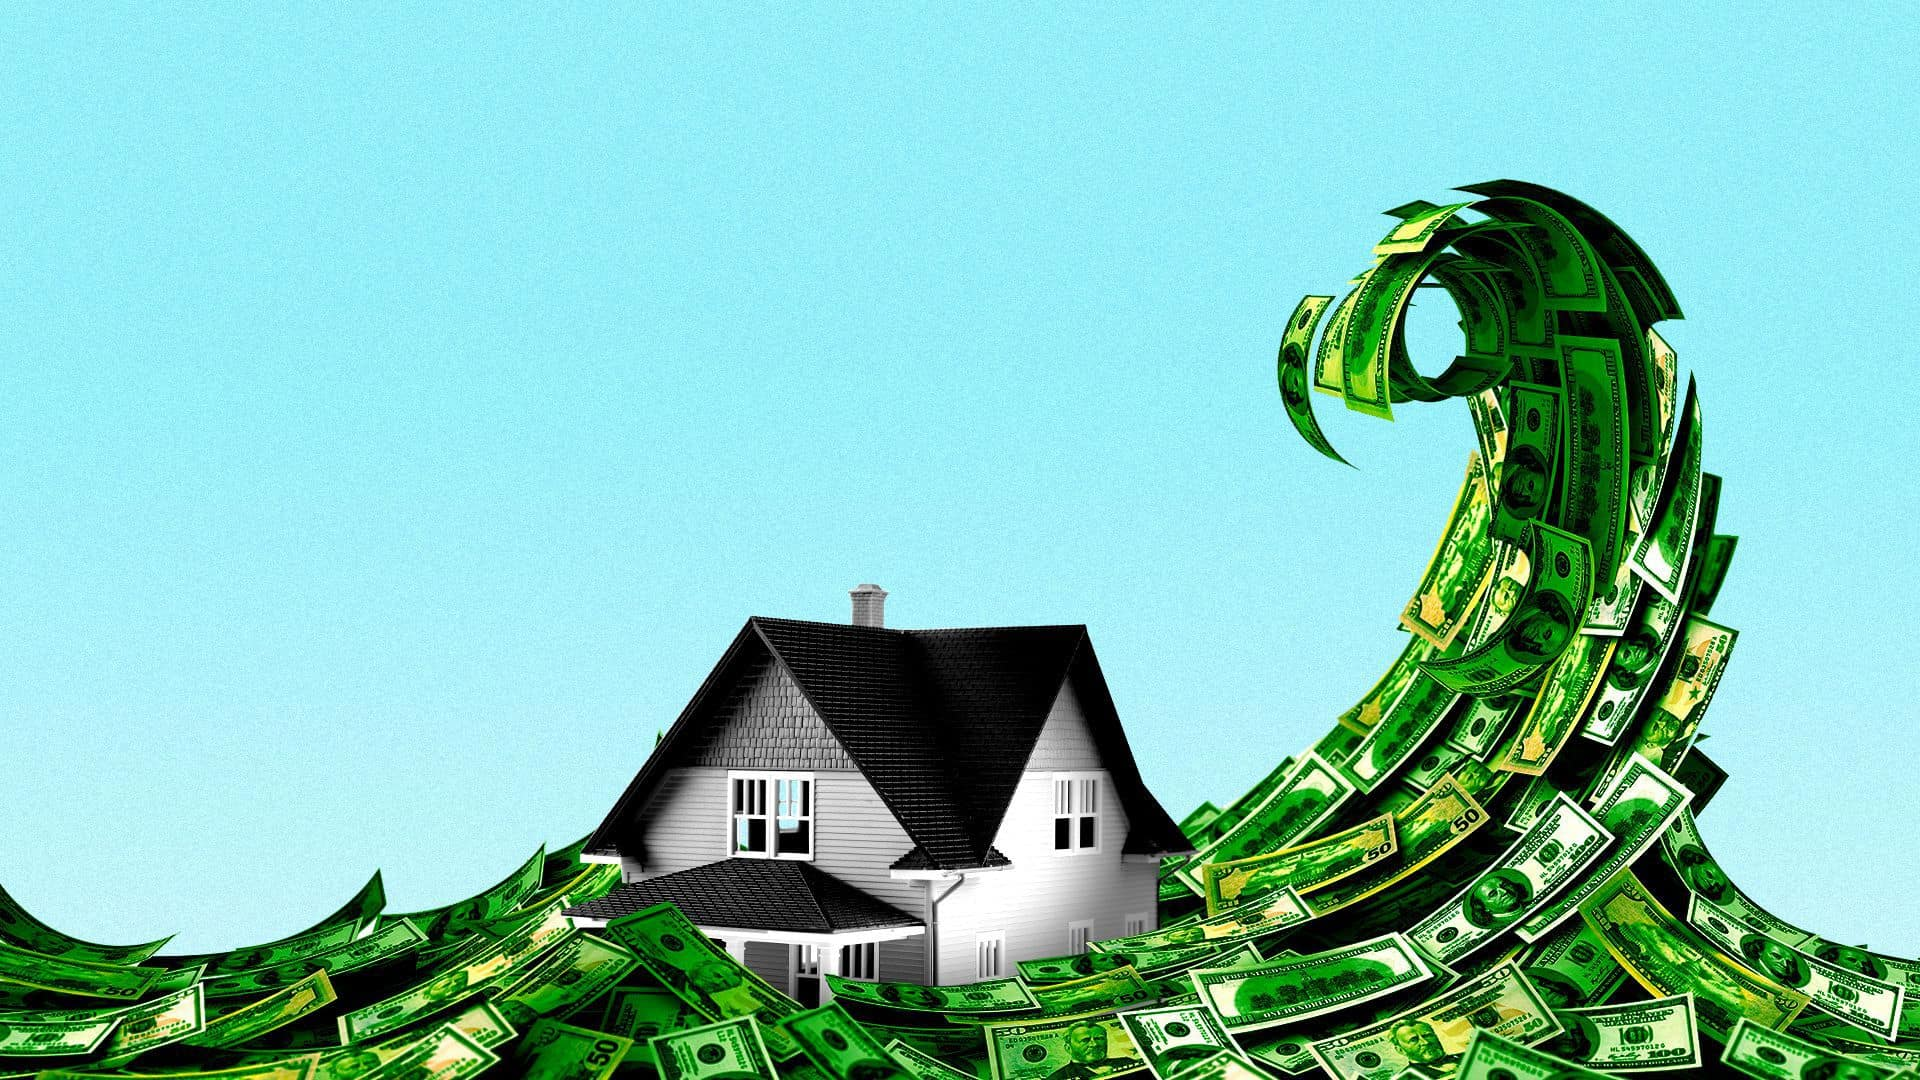 Foreign investors poised to flood U.S. real estate markets